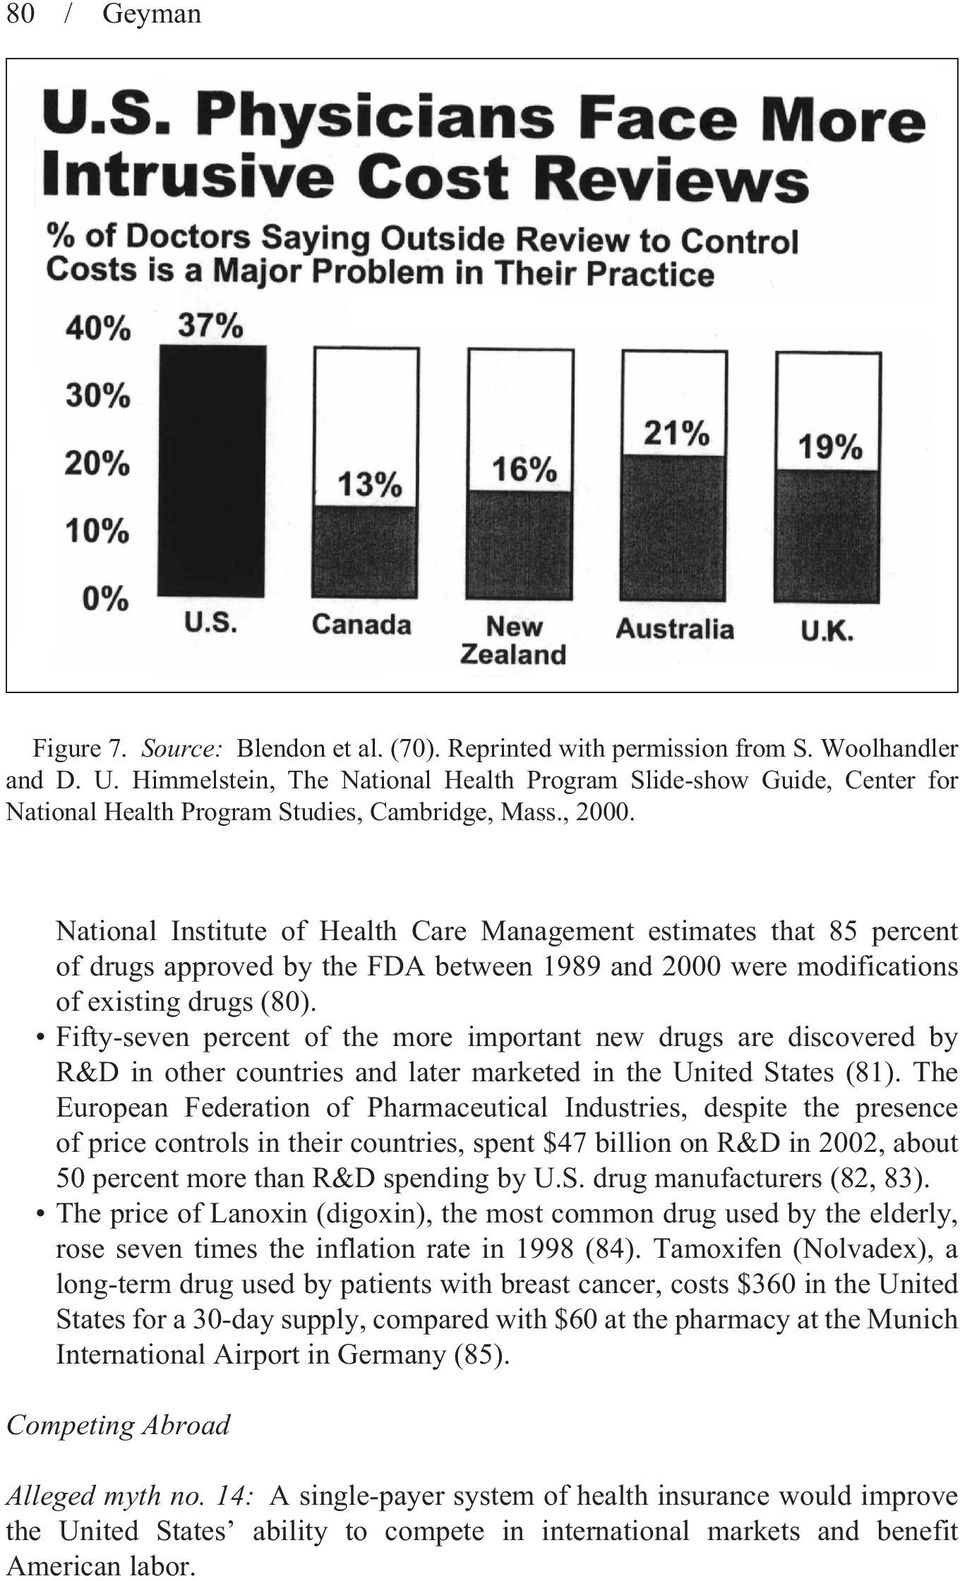 National Institute of Health Care Management estimates that 85 percent of drugs approved by the FDA between 1989 and 2000 were modifications of existing drugs (80).